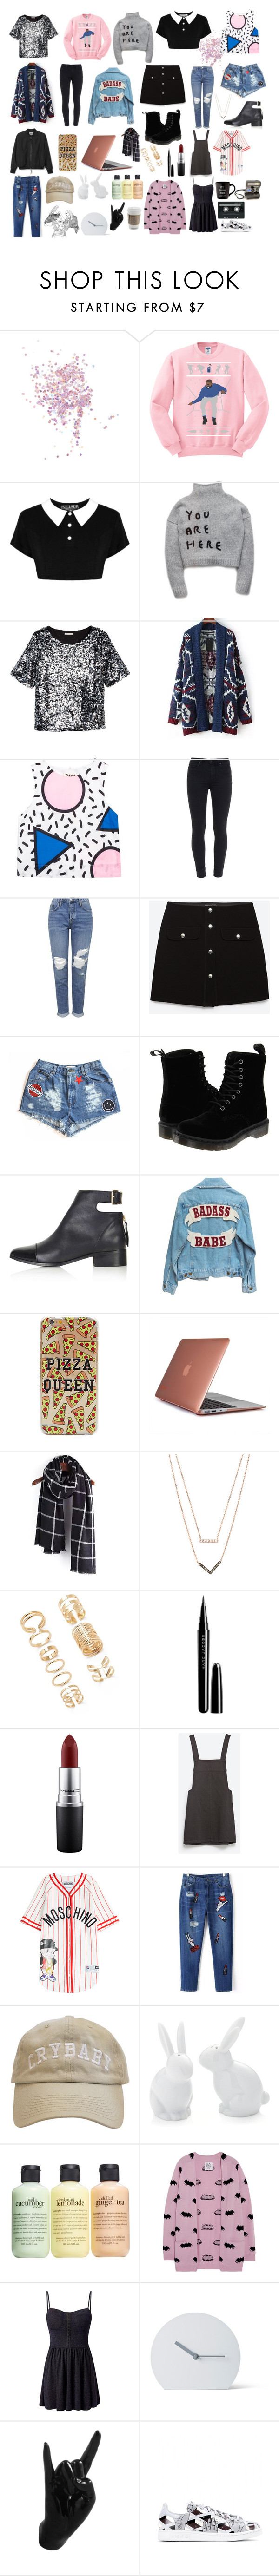 """""""things i like right now"""" by crescentchild ❤ liked on Polyvore featuring Topshop, H&M, Relaxfeel, Paige Denim, Zara, Dr. Martens, Speck, Michael Kors, Forever 21 and Marc Jacobs"""